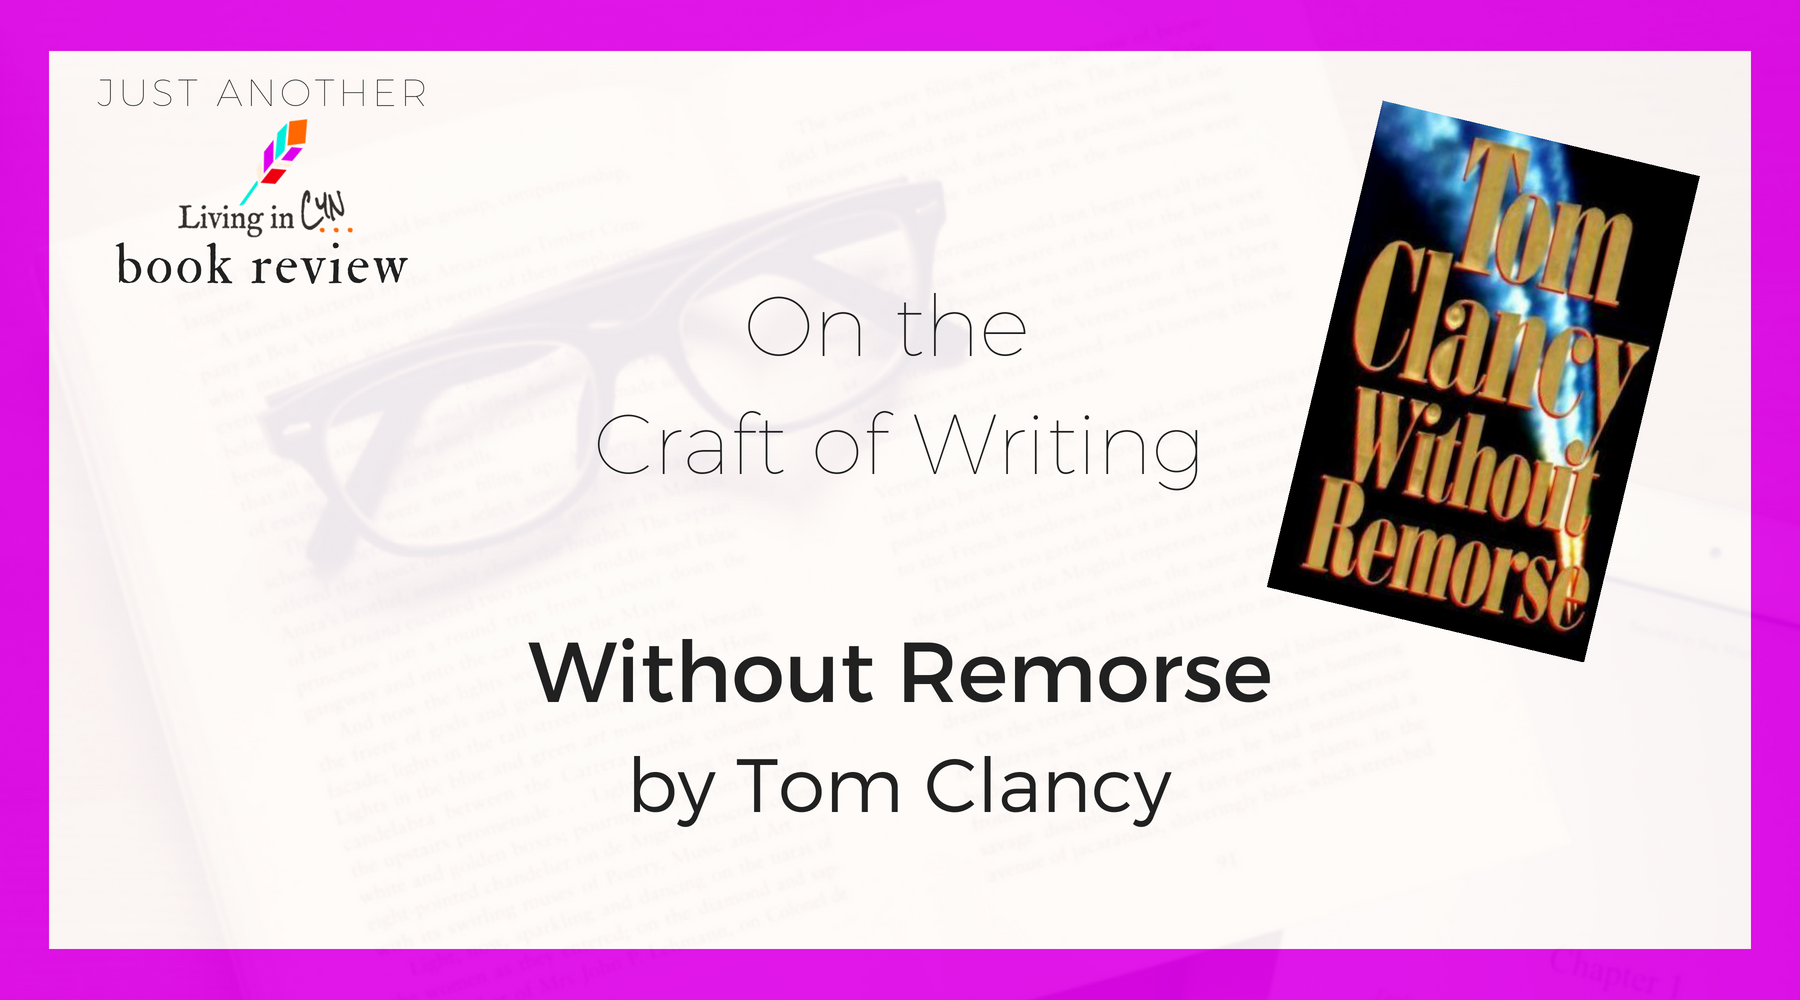 Insights from Bestselling Master. A book review of Tom Clancy's Without Remorse